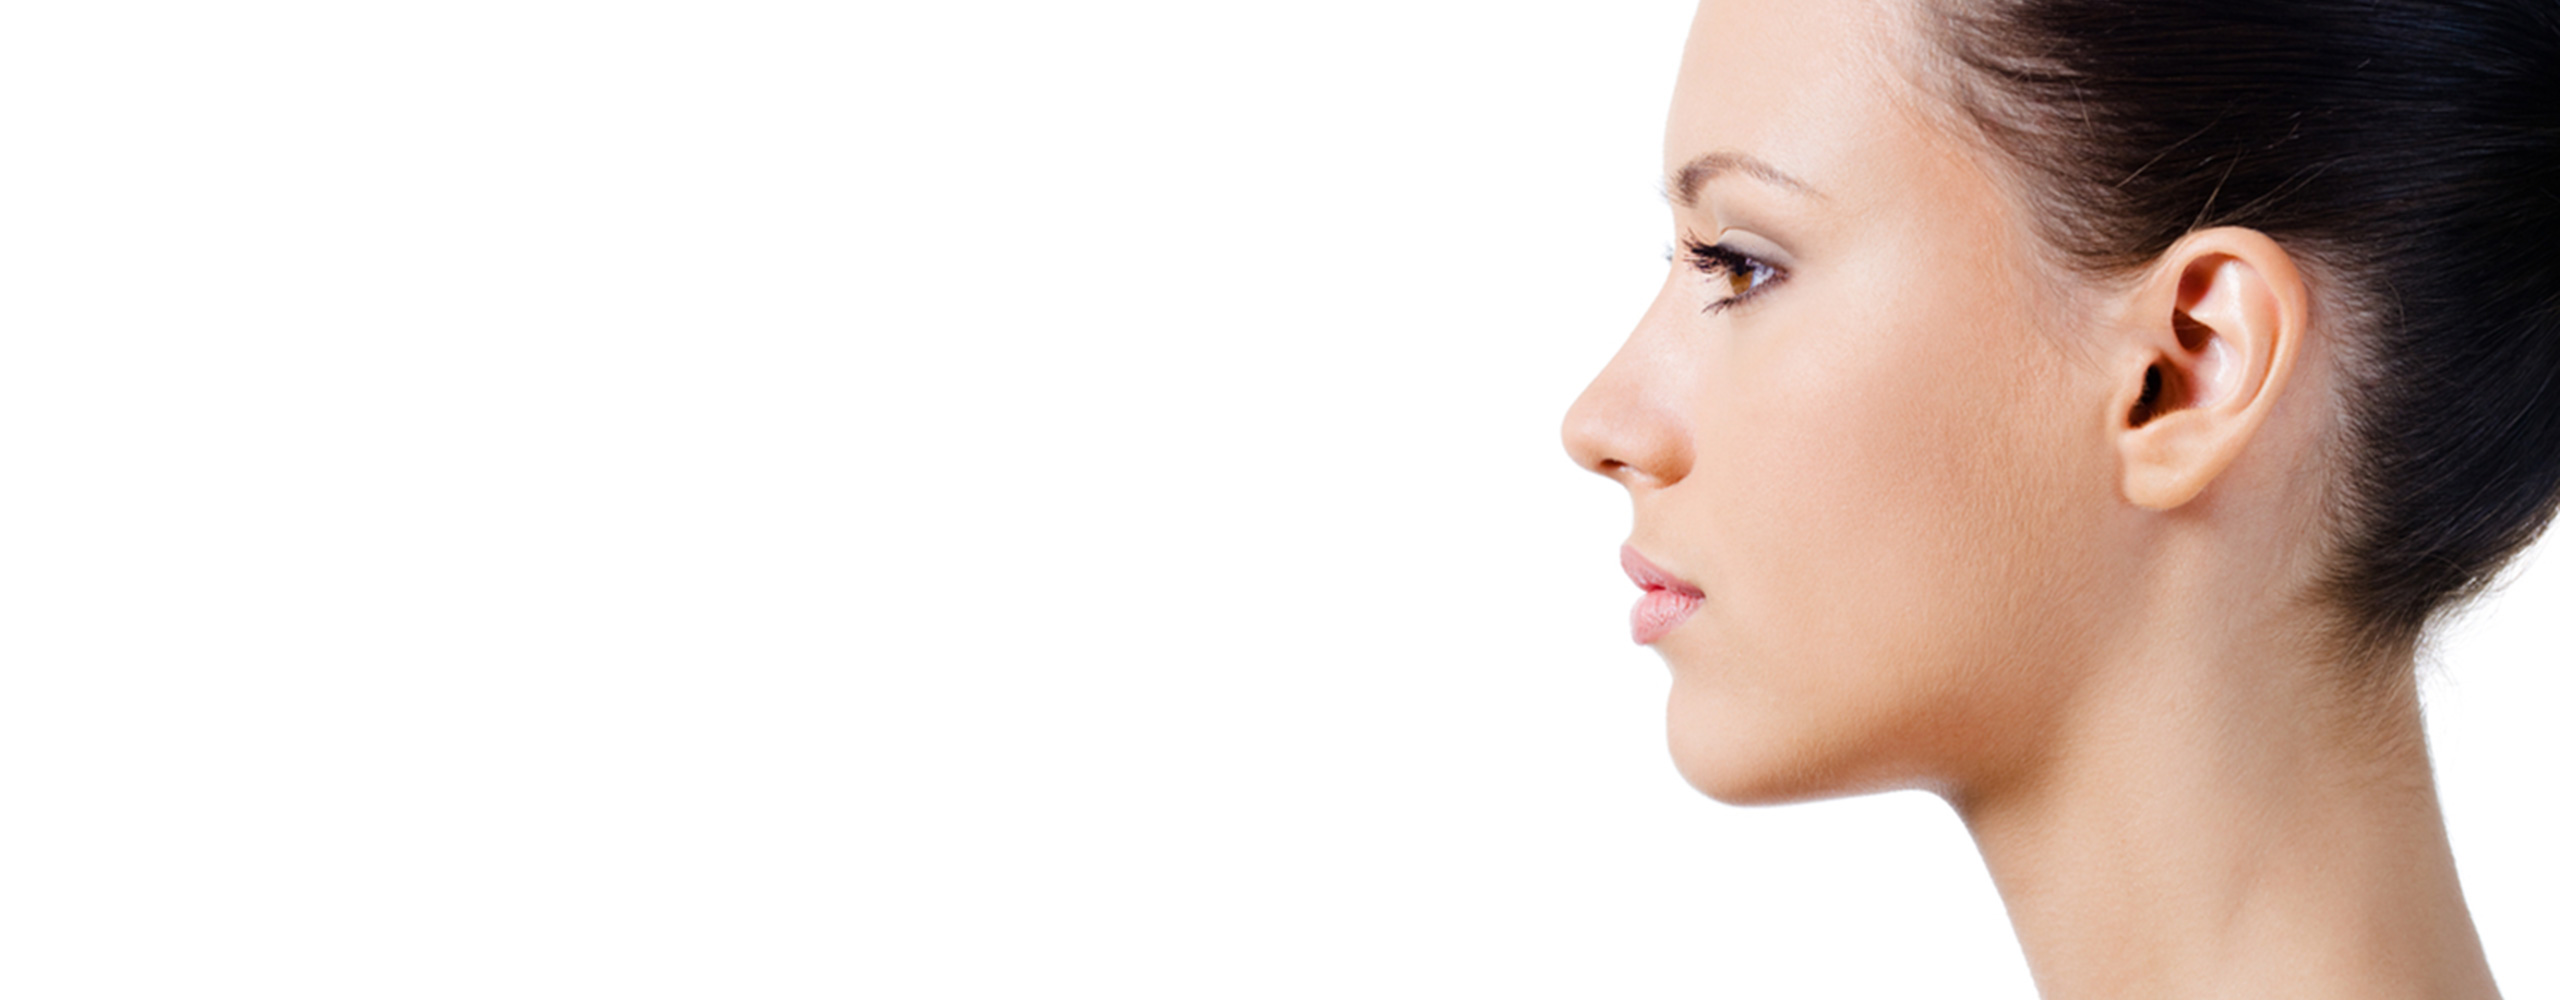 Rhinoplasty - nose job surgery Tauranga